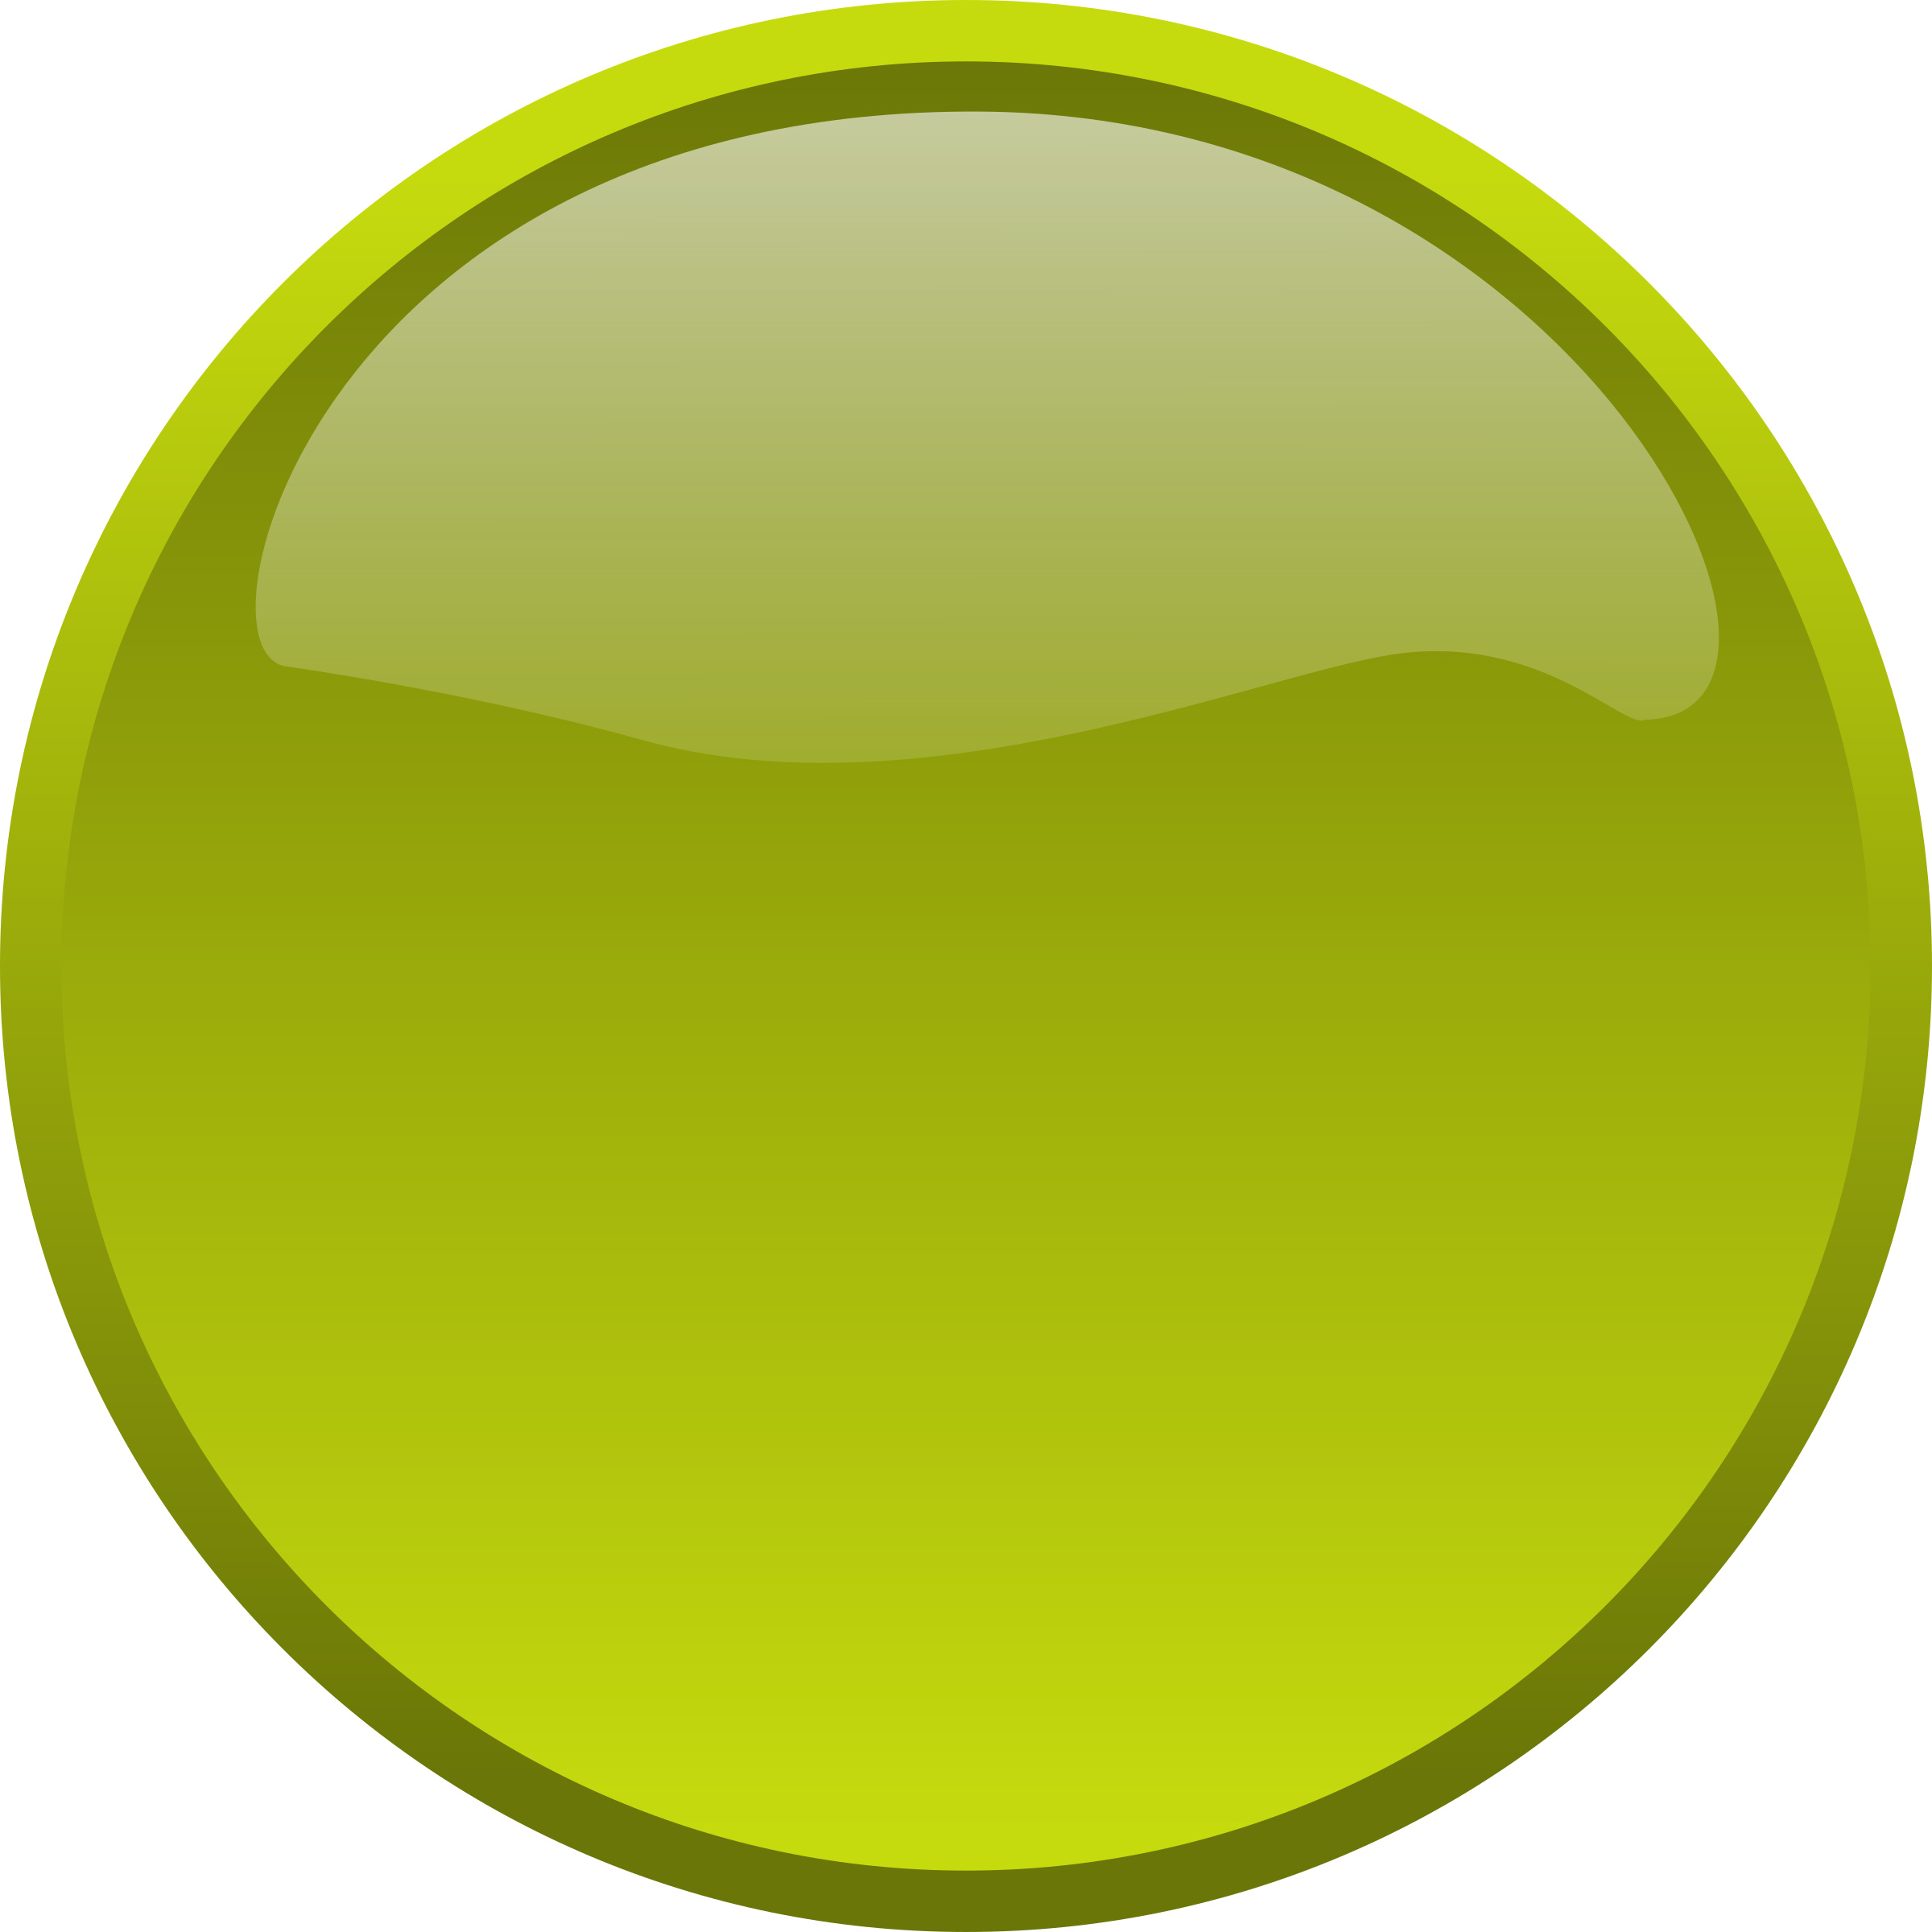 graphic transparent download Vector buttons circle. Clipart button yellow big